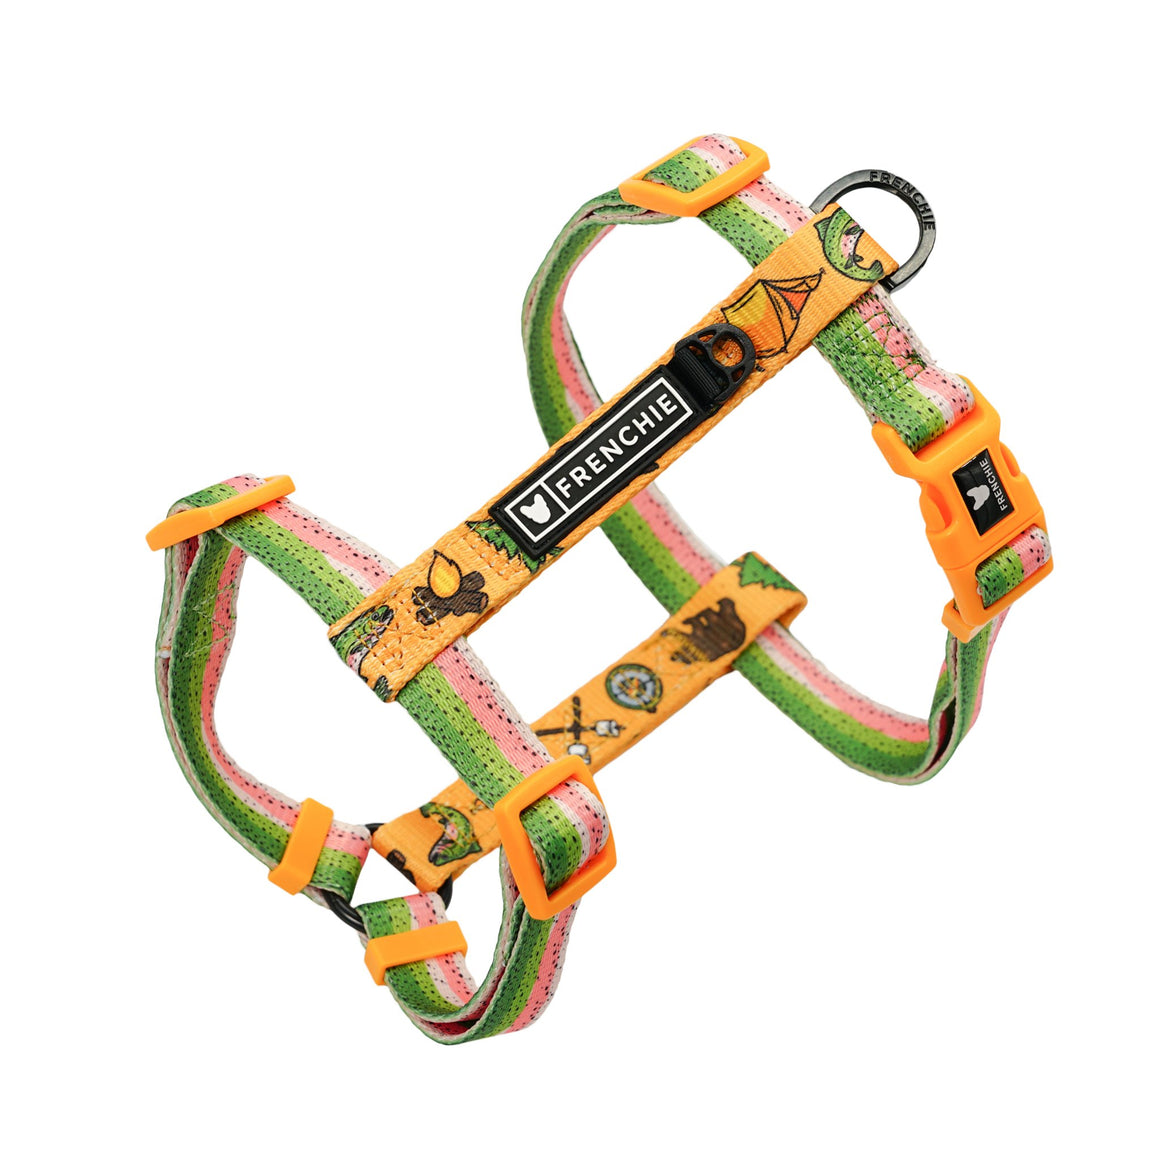 Frenchie Strap Harness - Happy Camper - Frenchie Bulldog - Shop Harnesses for French Bulldogs - Shop French Bulldog Harness - Harnesses for Pugs